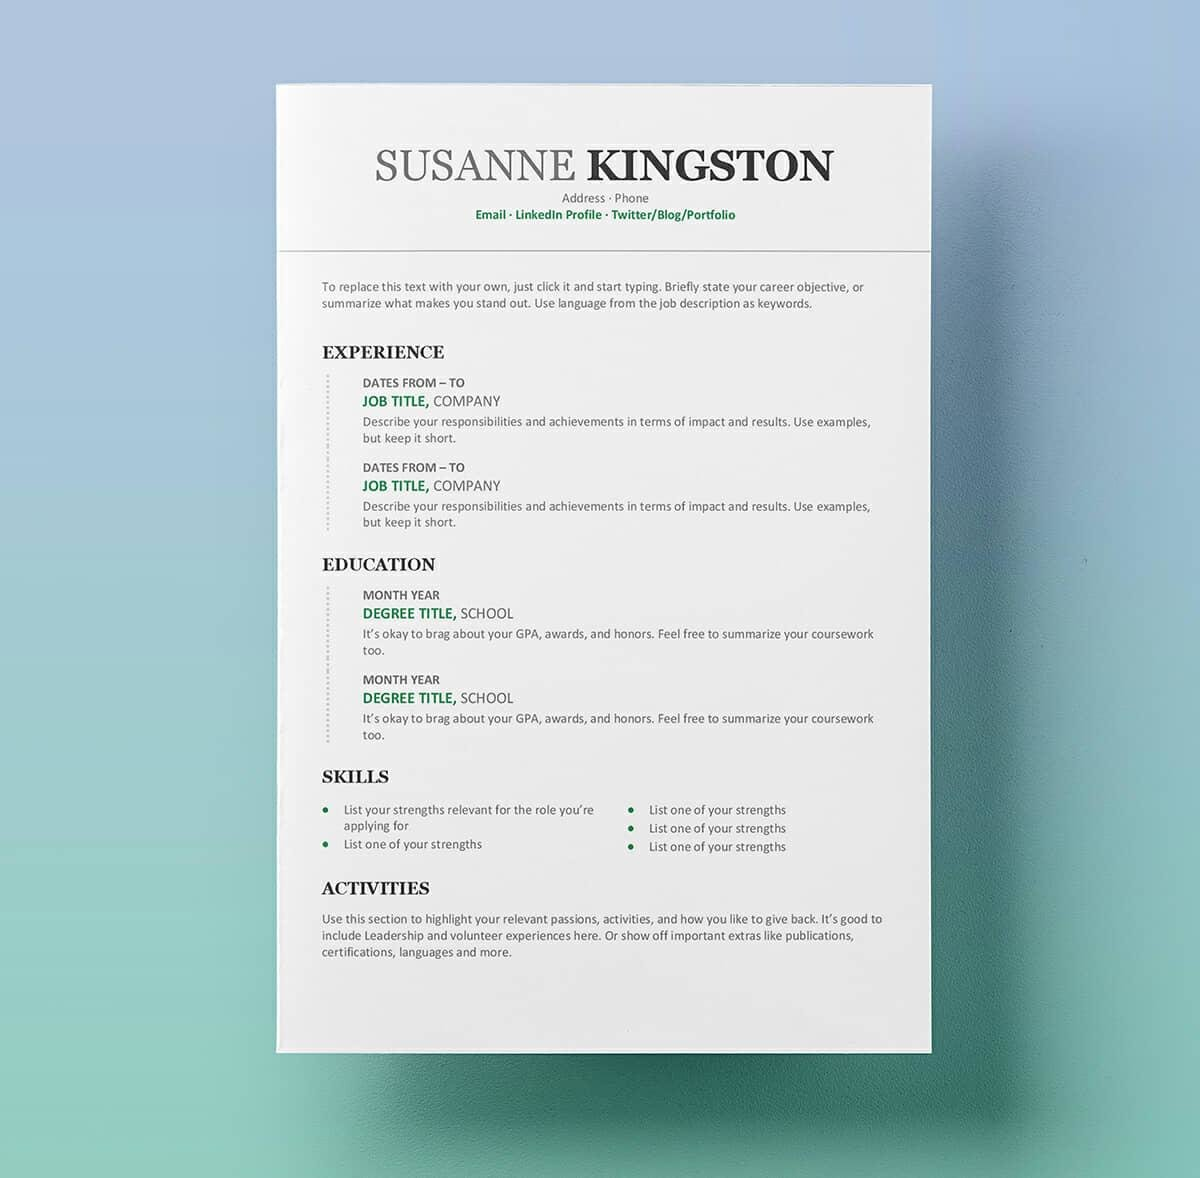 Microsoft Word Resume With Green Details. This Basic Resume Template ...  Simple Resume Template Word